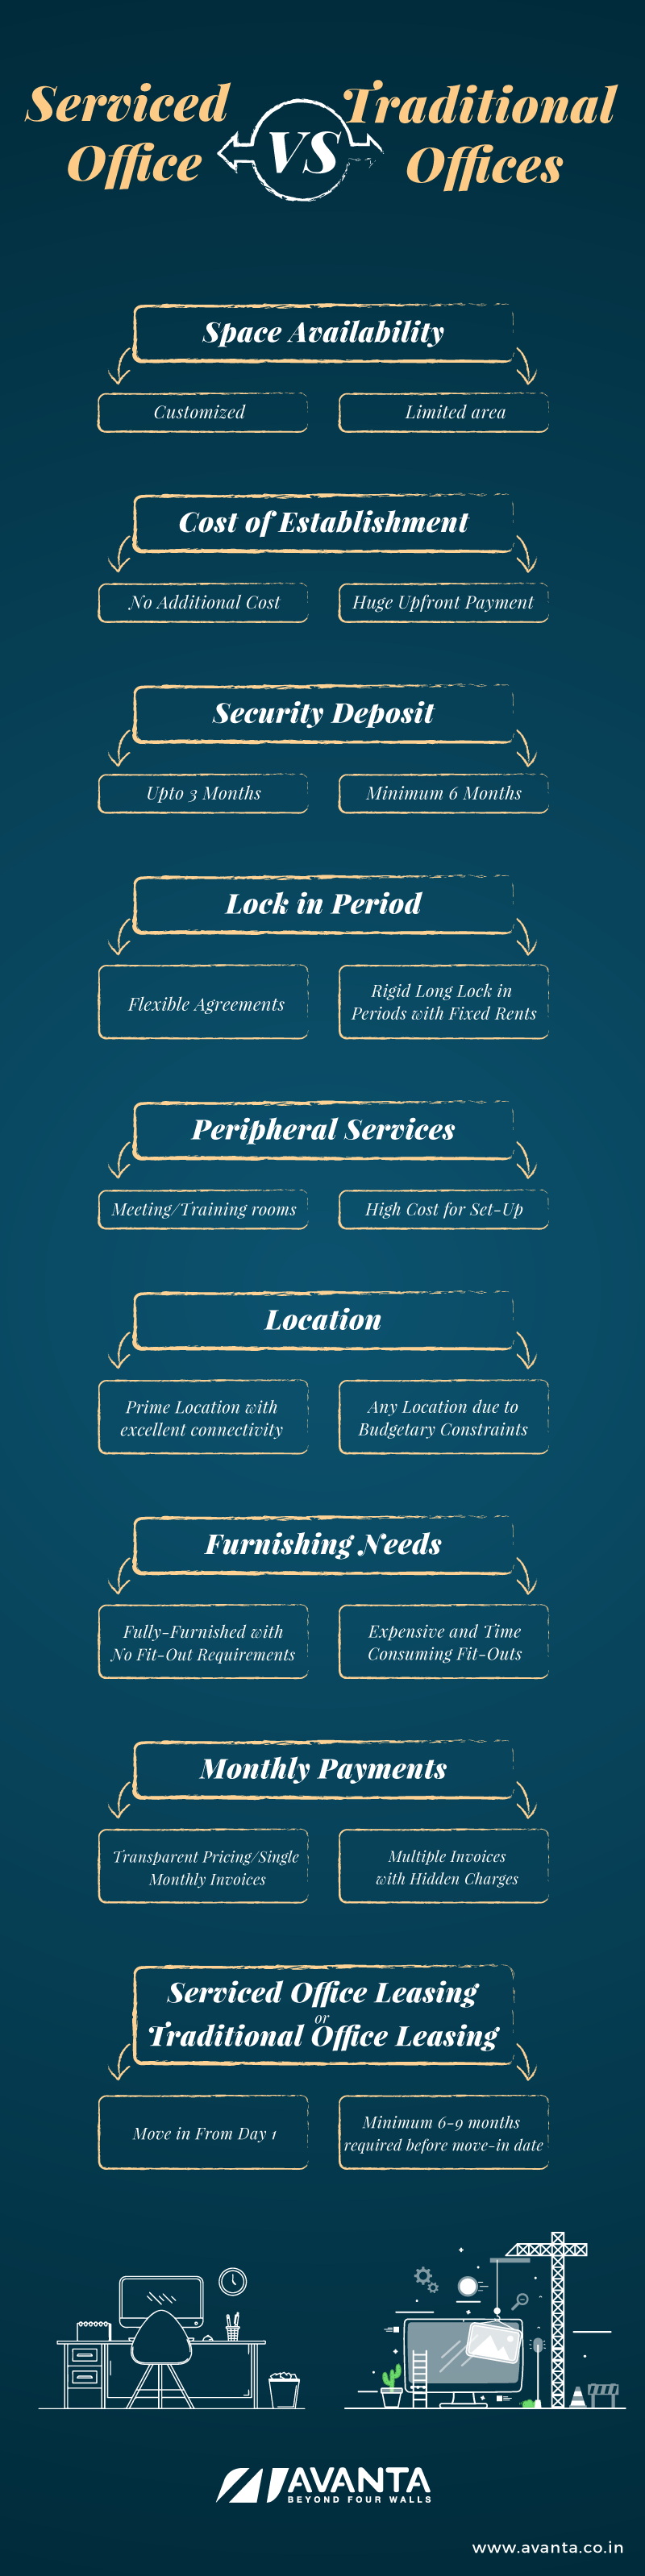 Serviced-Offices-Vs-Traditional-Offices